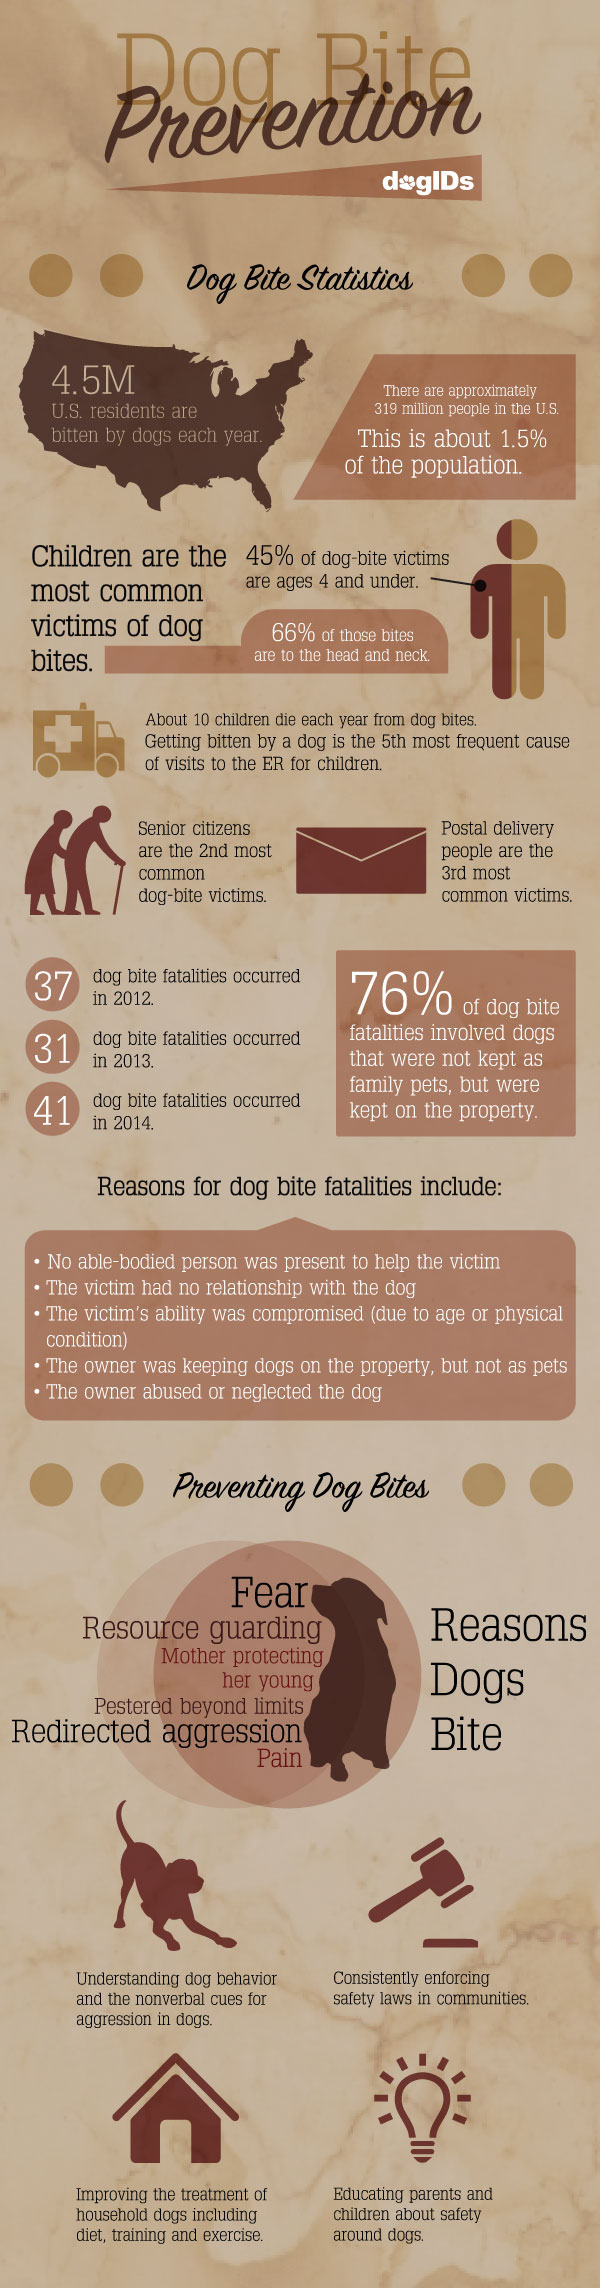 Dog Bite Prevention Infographic